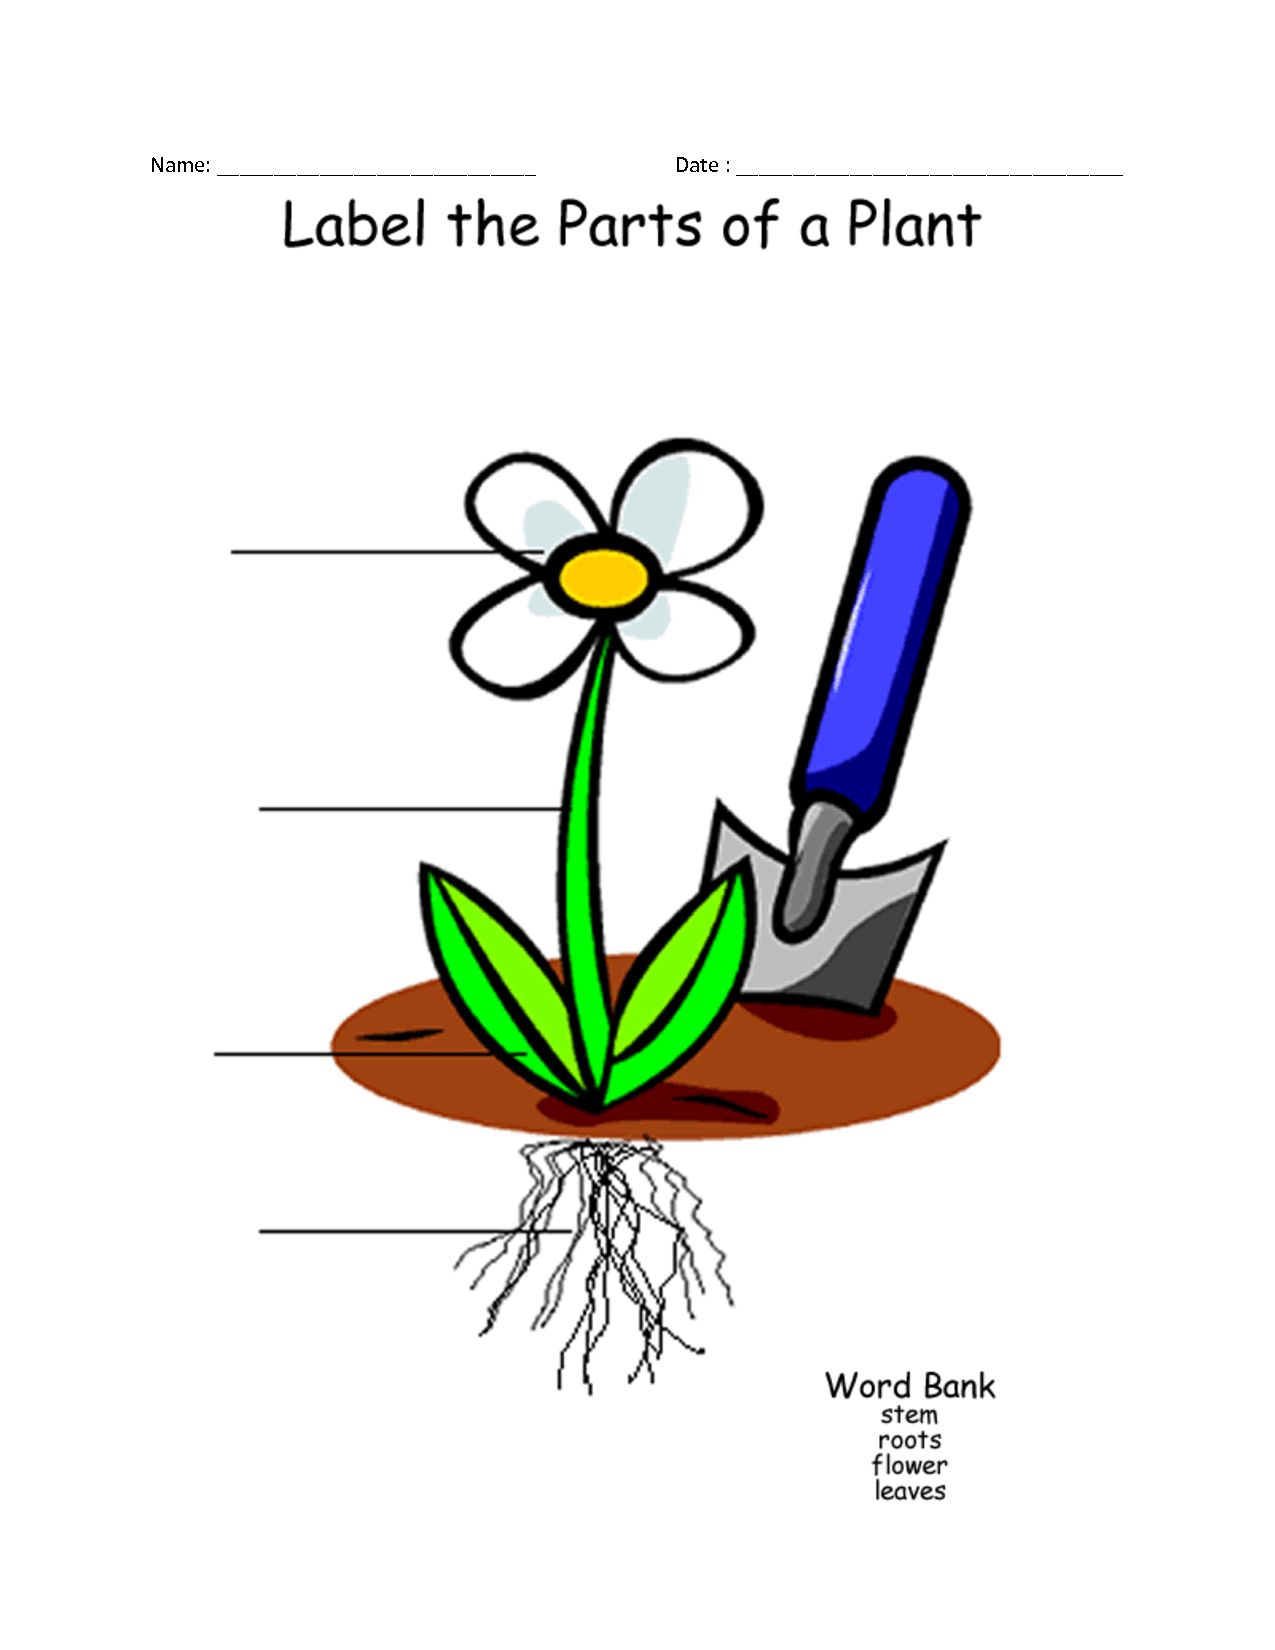 Plant drawings for kids